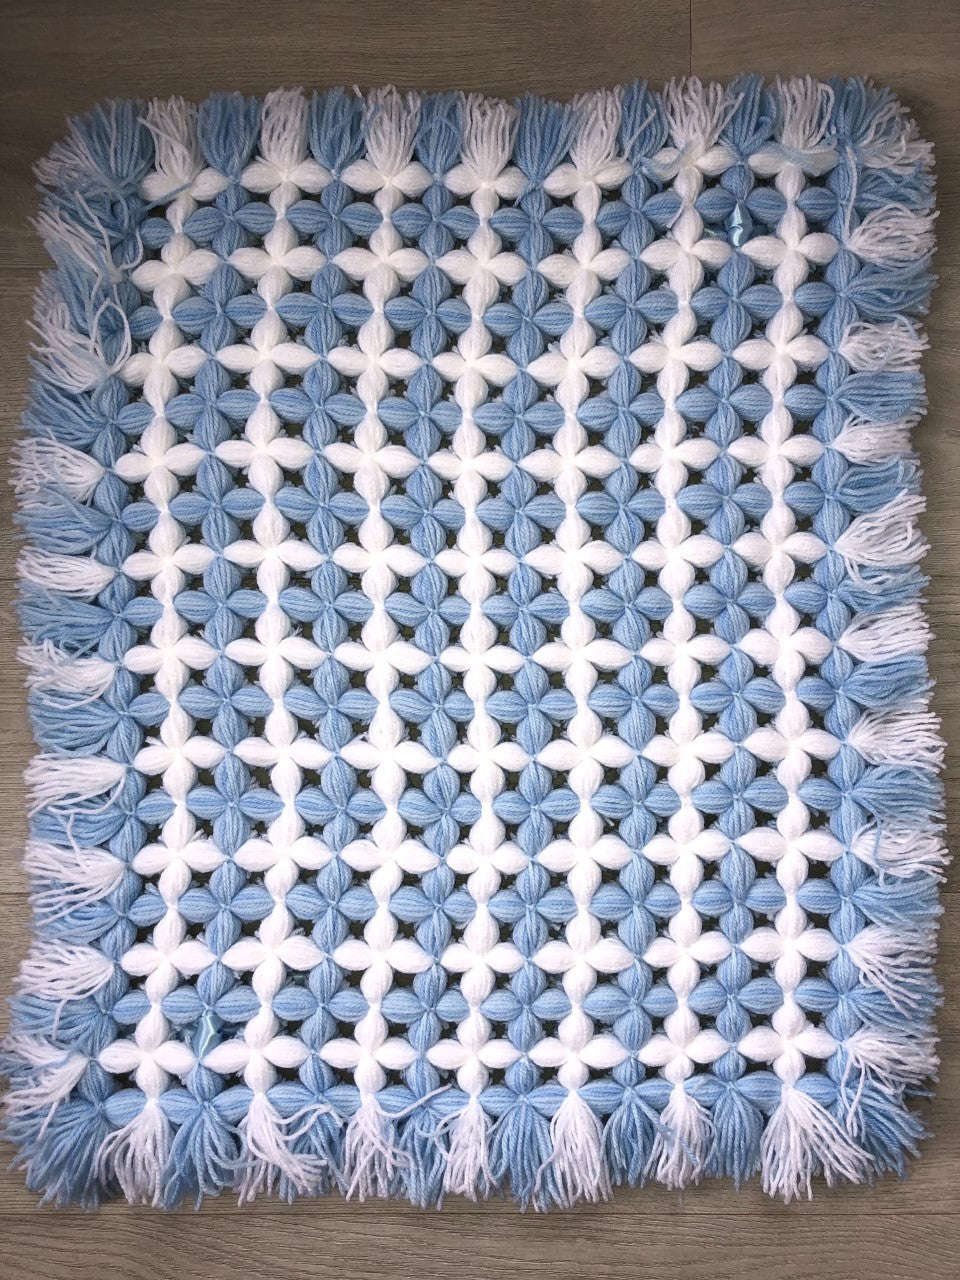 Hand Knitted Pram Blanket Blue/White